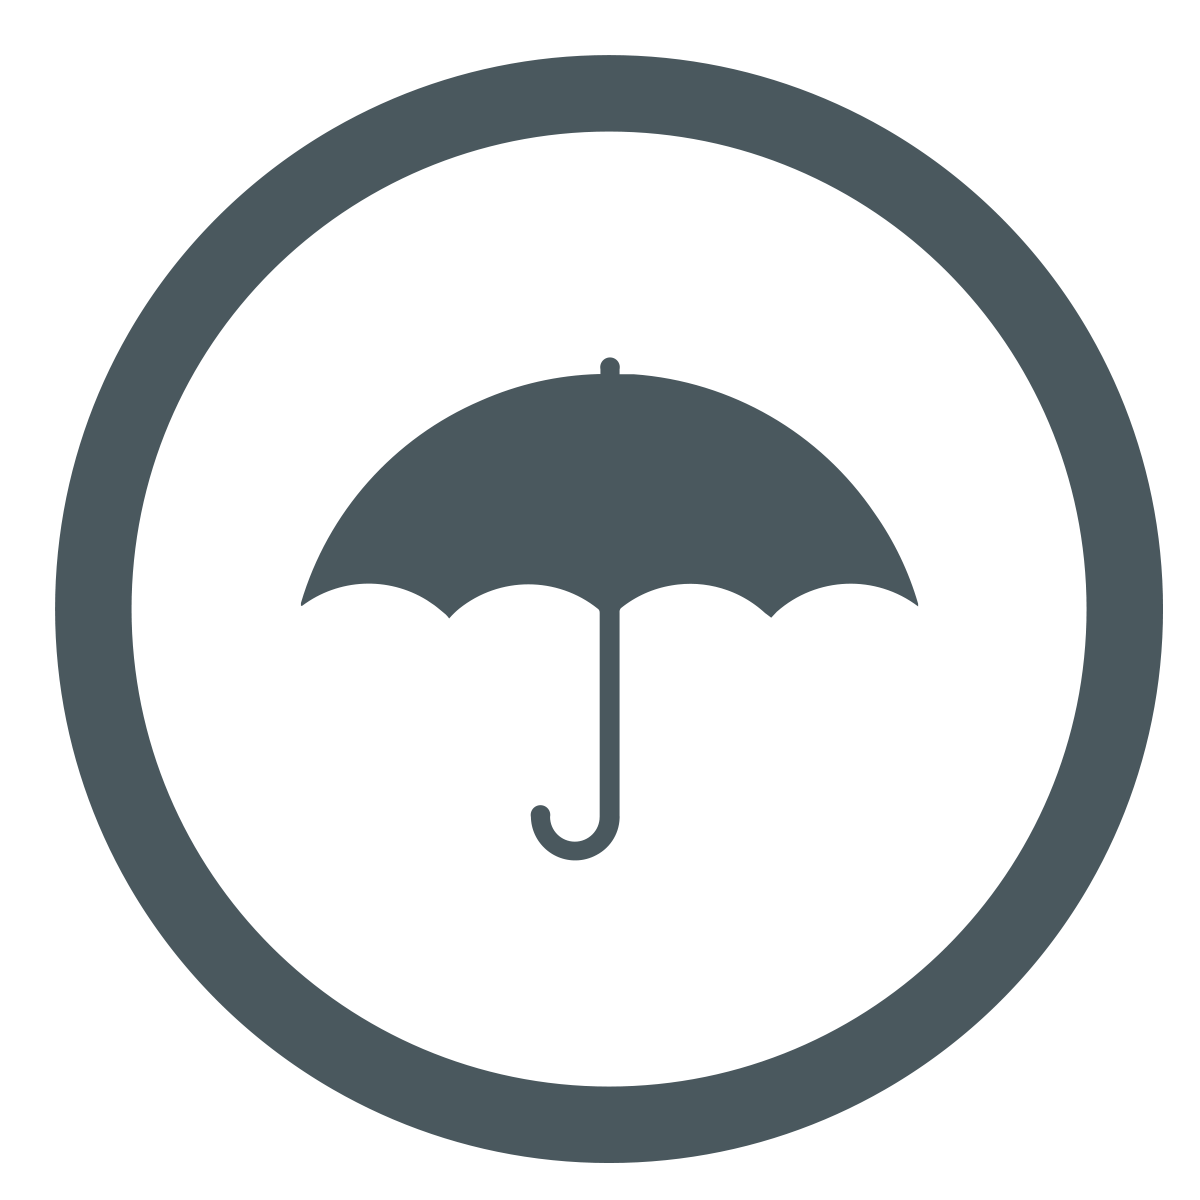 wcs-umbrella-icon-grey.png